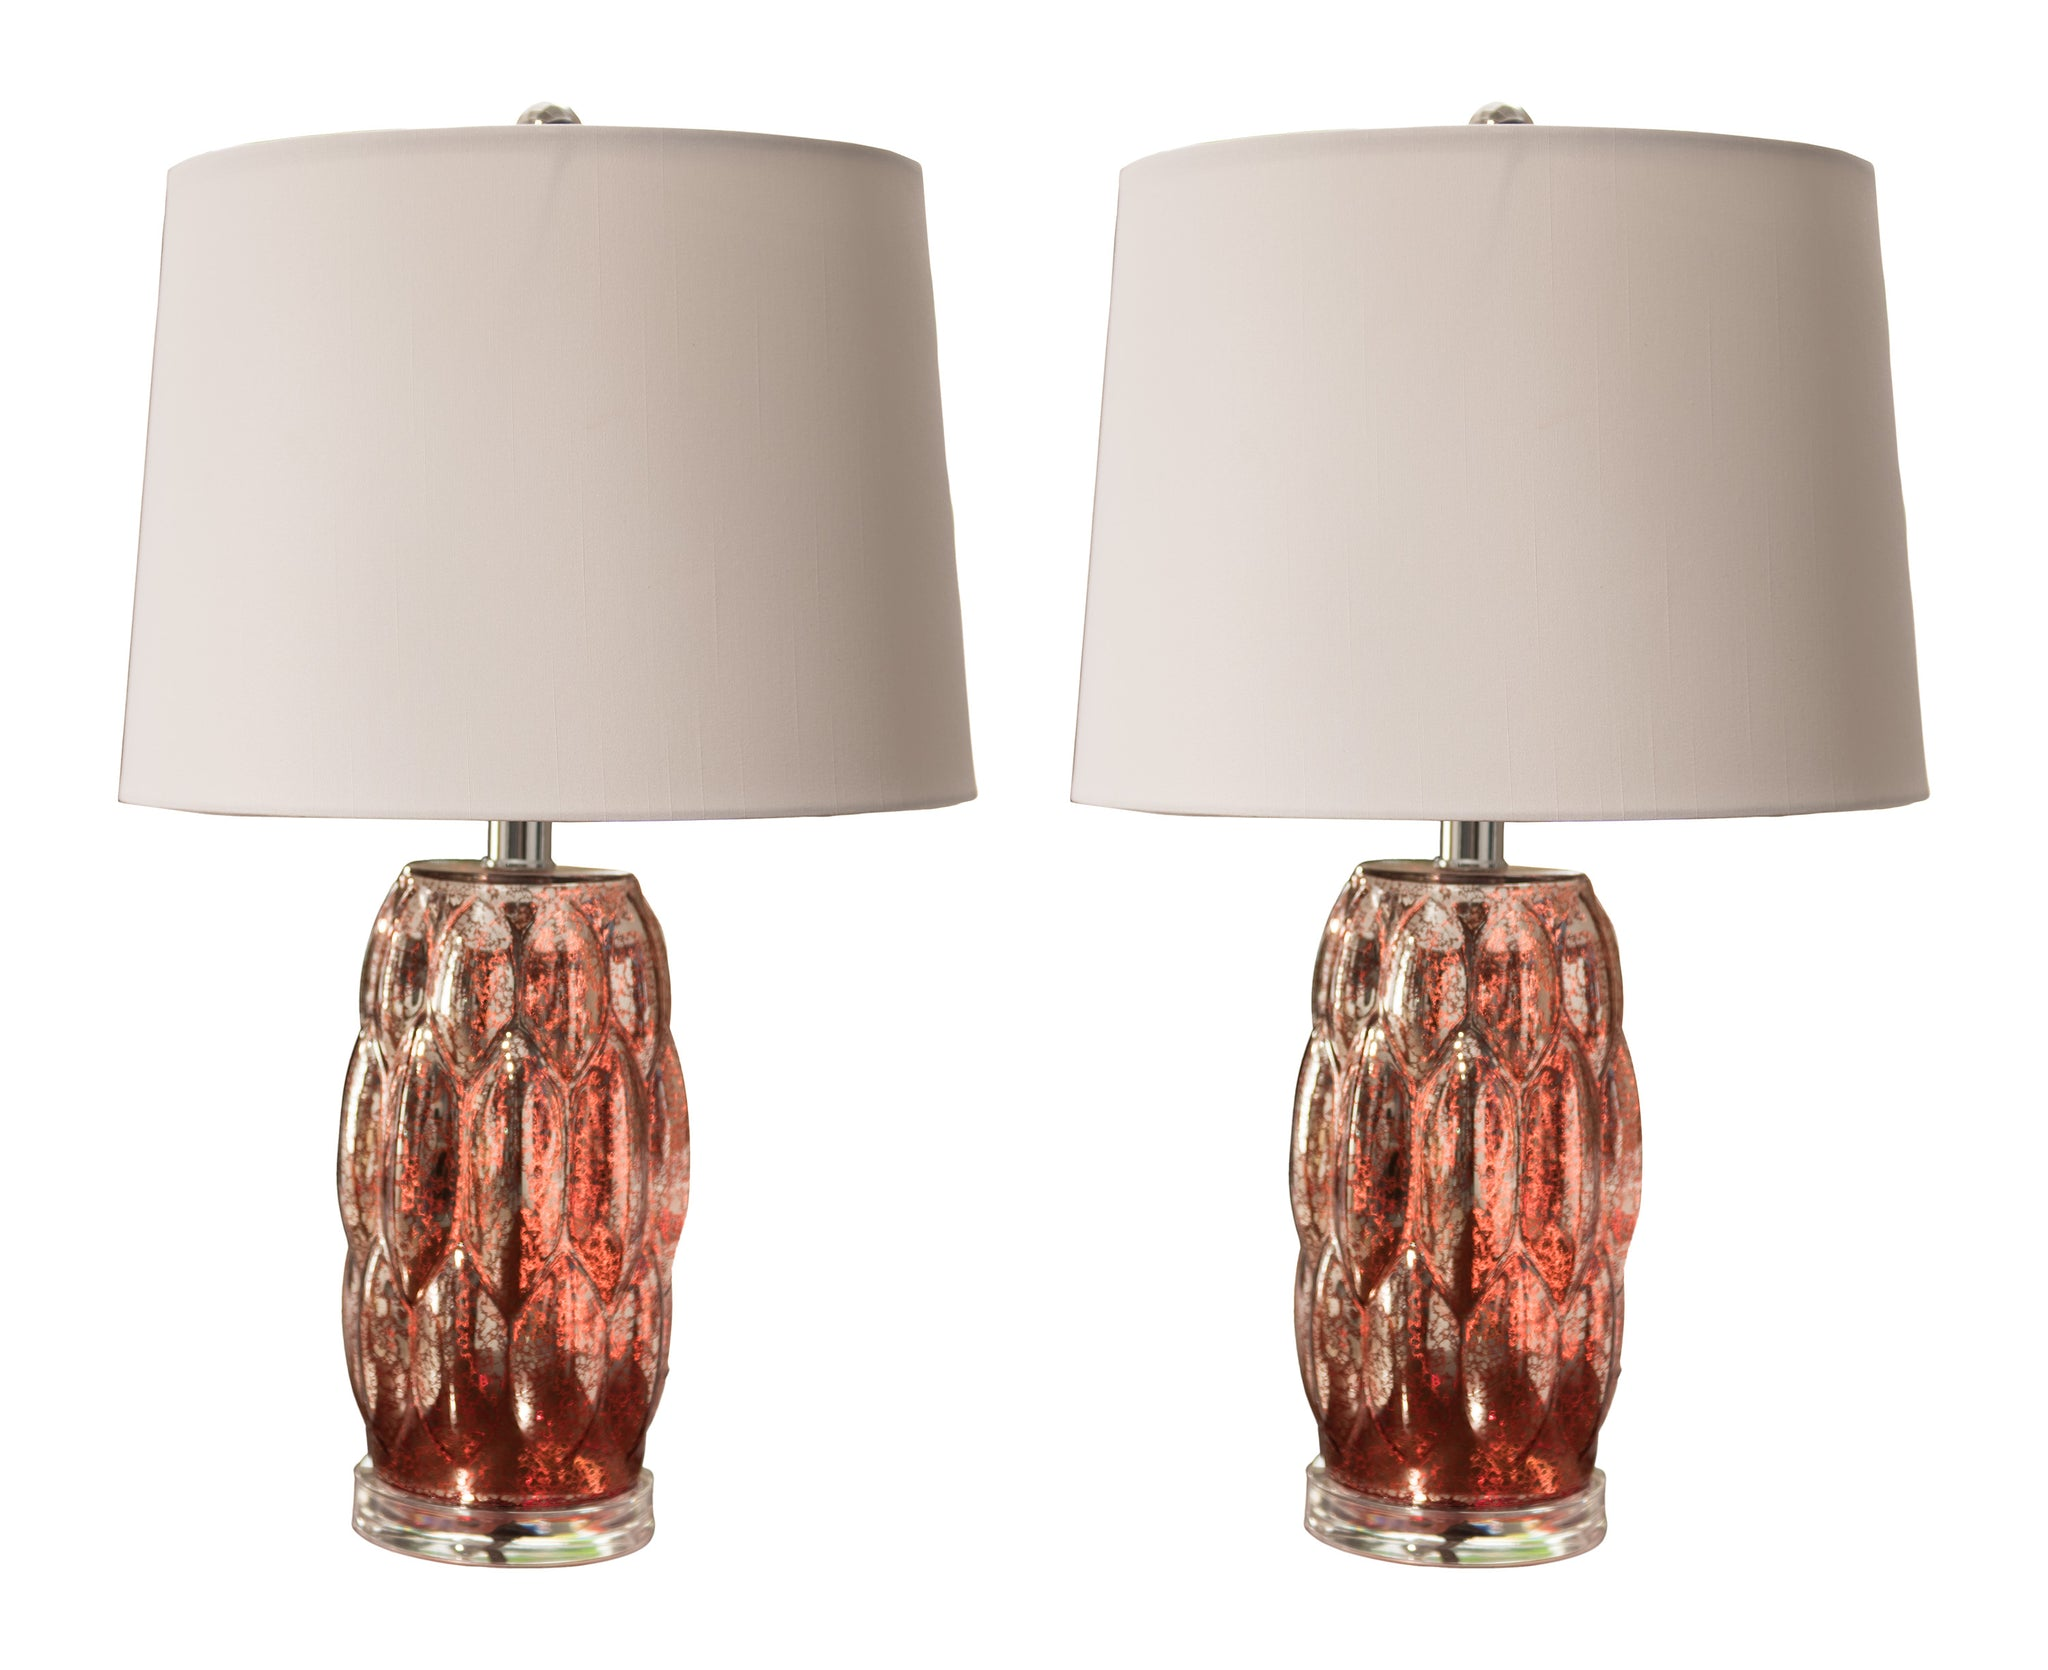 Davina Silver Pink Glass Body White Fabric Oval Shade Transitional Multi Room Bedroom Bedside Desk Bookcase Living Room Table Lamps Set Of 2